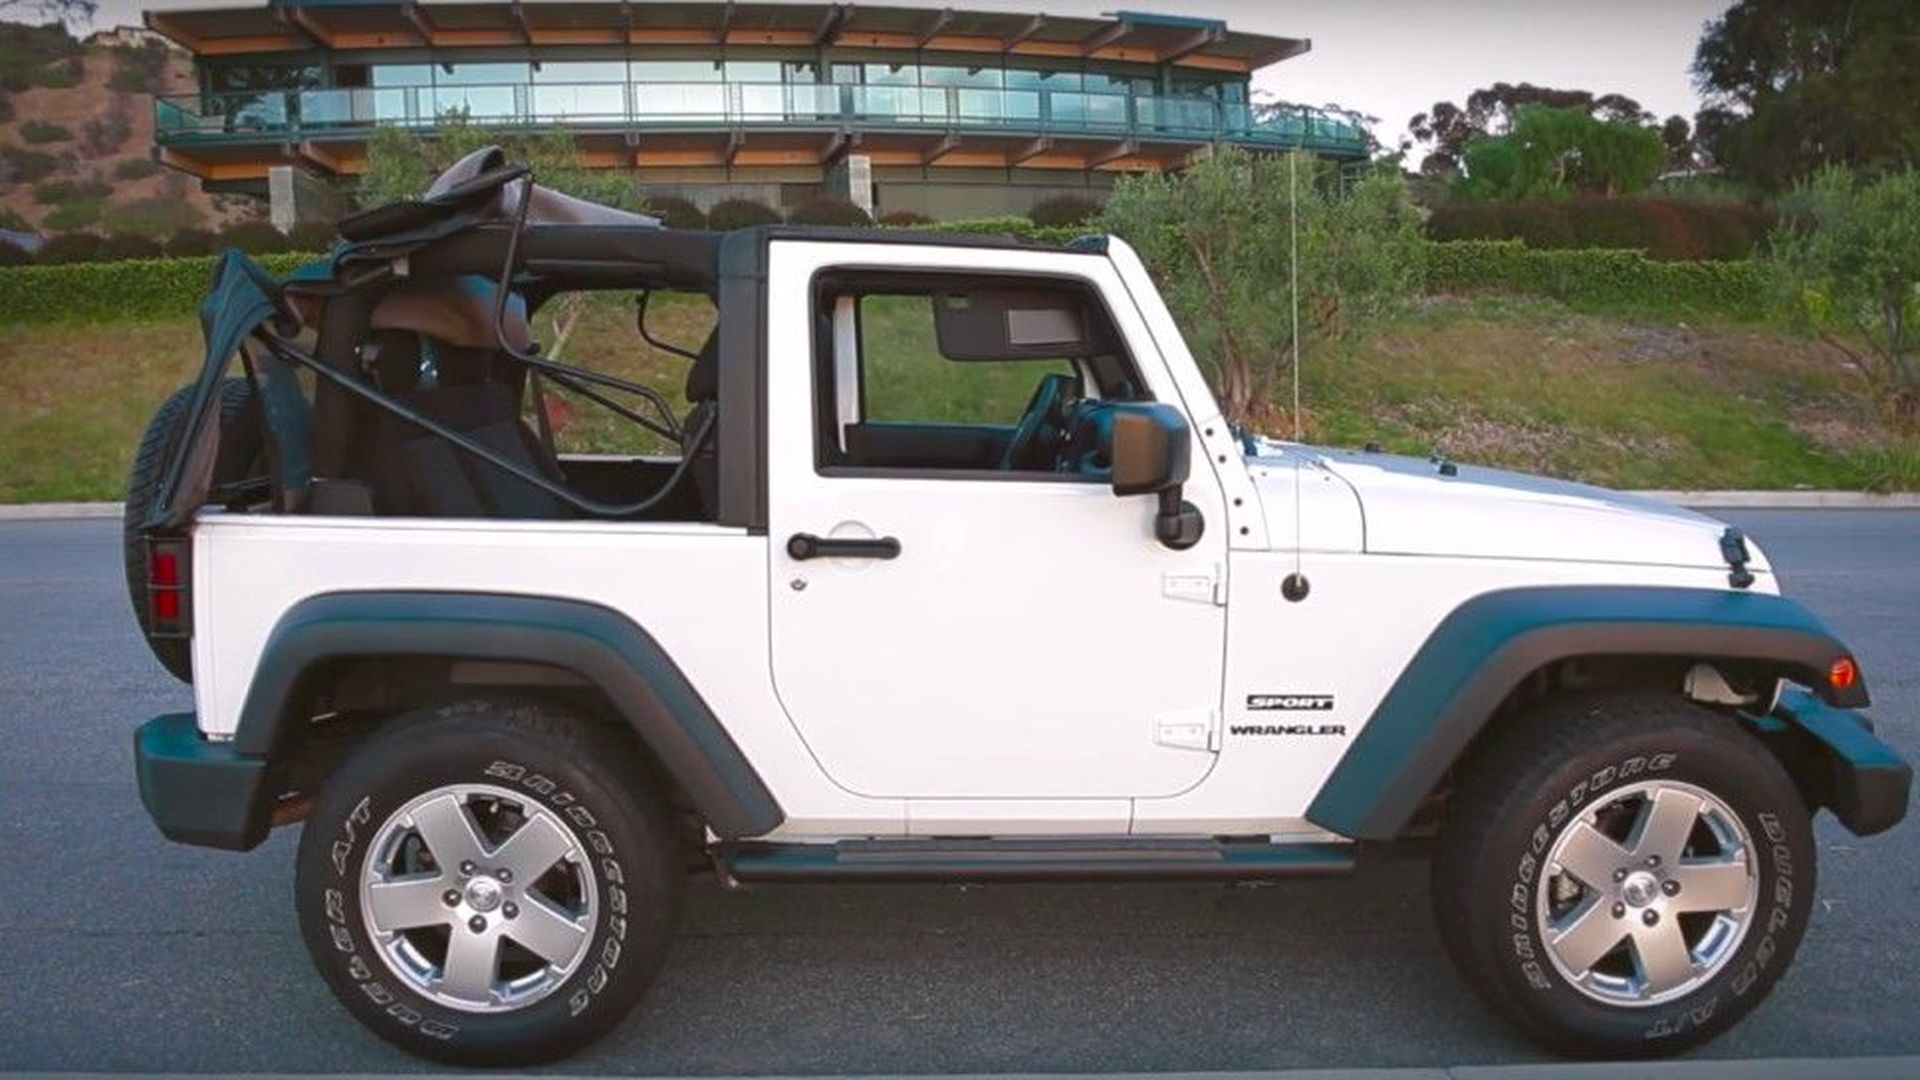 ly an Expert Can Name All of These Jeep Models from an Image Can